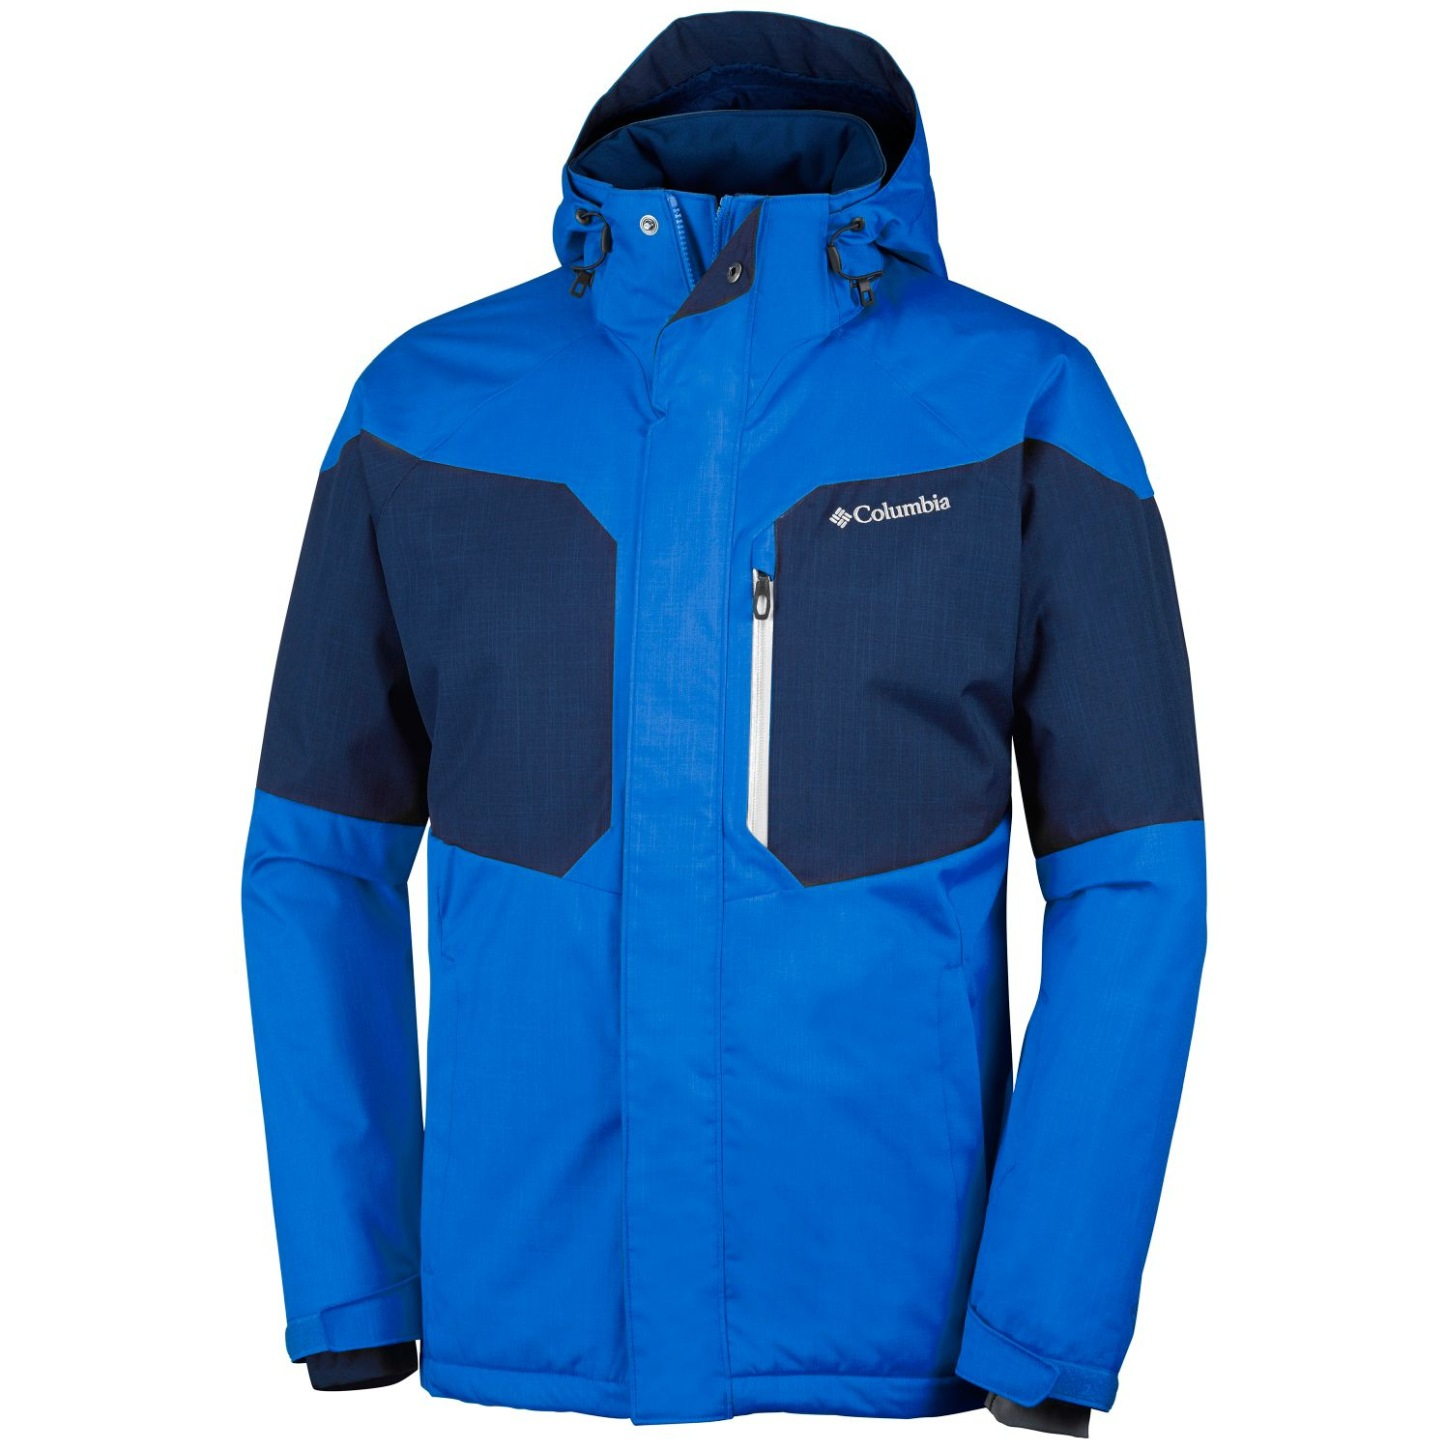 Columbia Men's Alpine Action Ski Jacket Extended Size Super Blue, Collegiate Navy-30